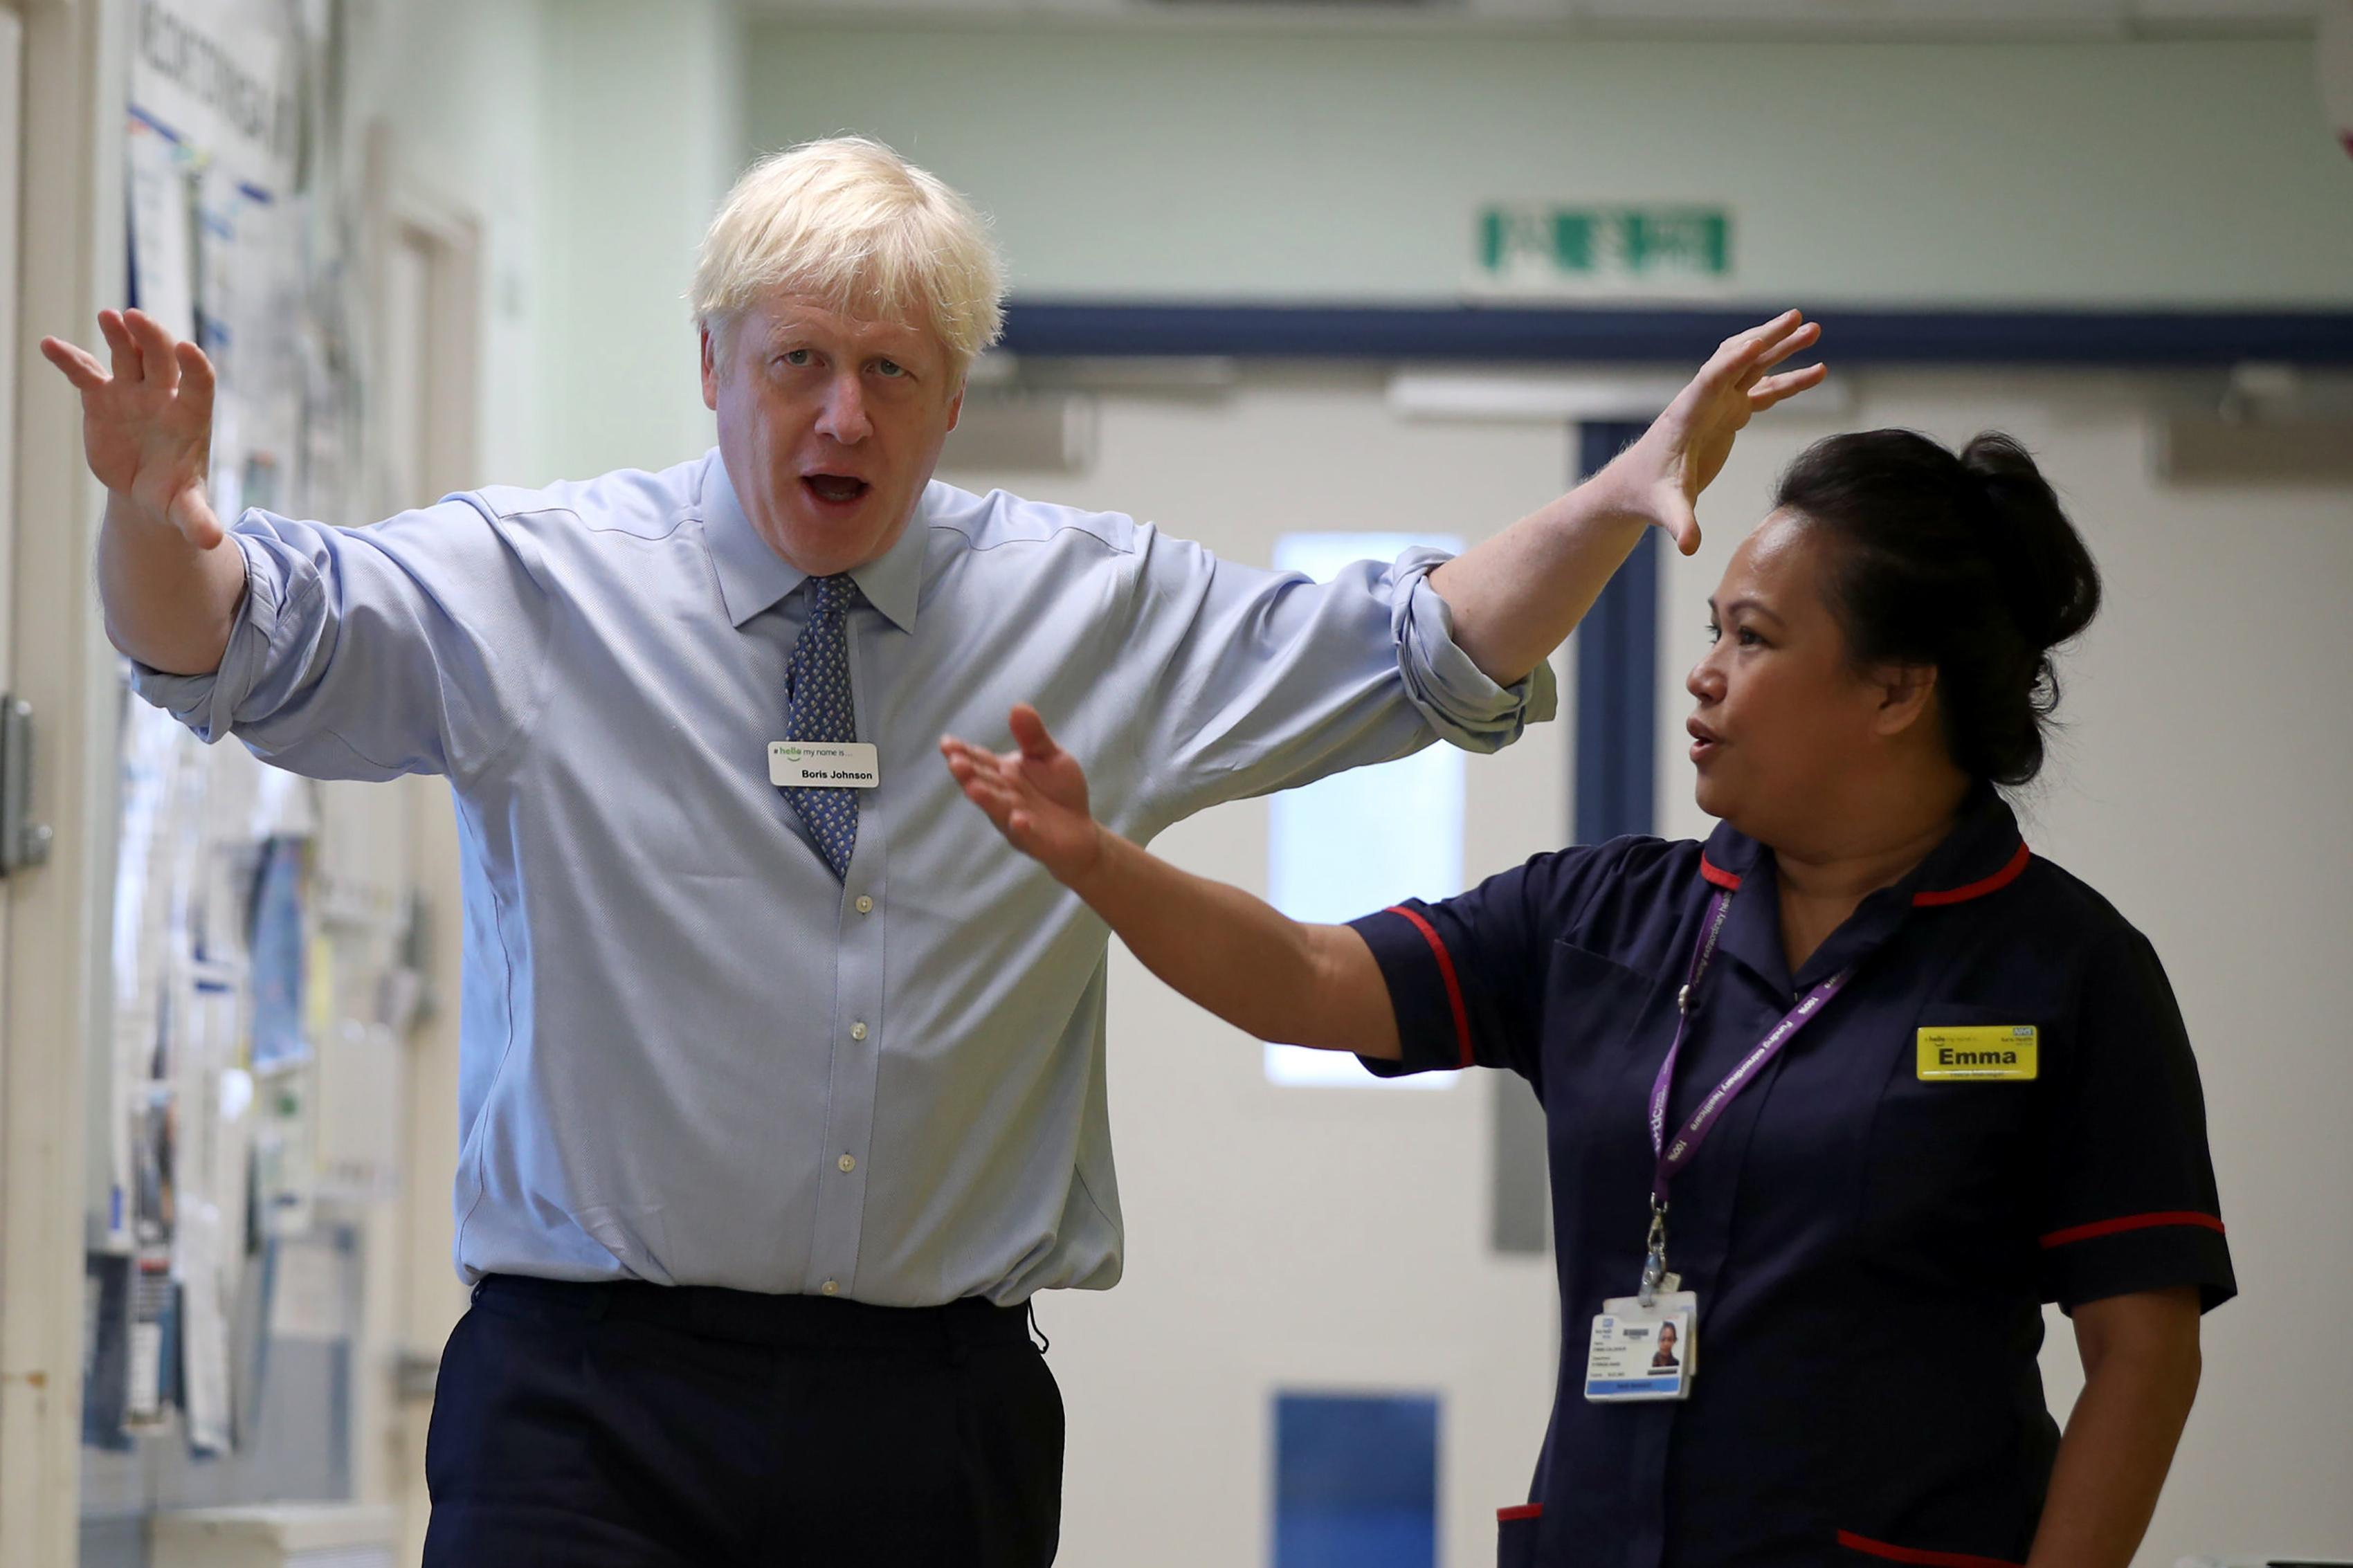 Britain's Prime Minister Boris Johnson (L) gestures during his visit to Whipps Cross University Hospital in Leytonstone, east London on September 18, 2019. (Photo by Yui Mok / POOL / AFP) (Photo credit should read YUI MOK/AFP/Getty Images)